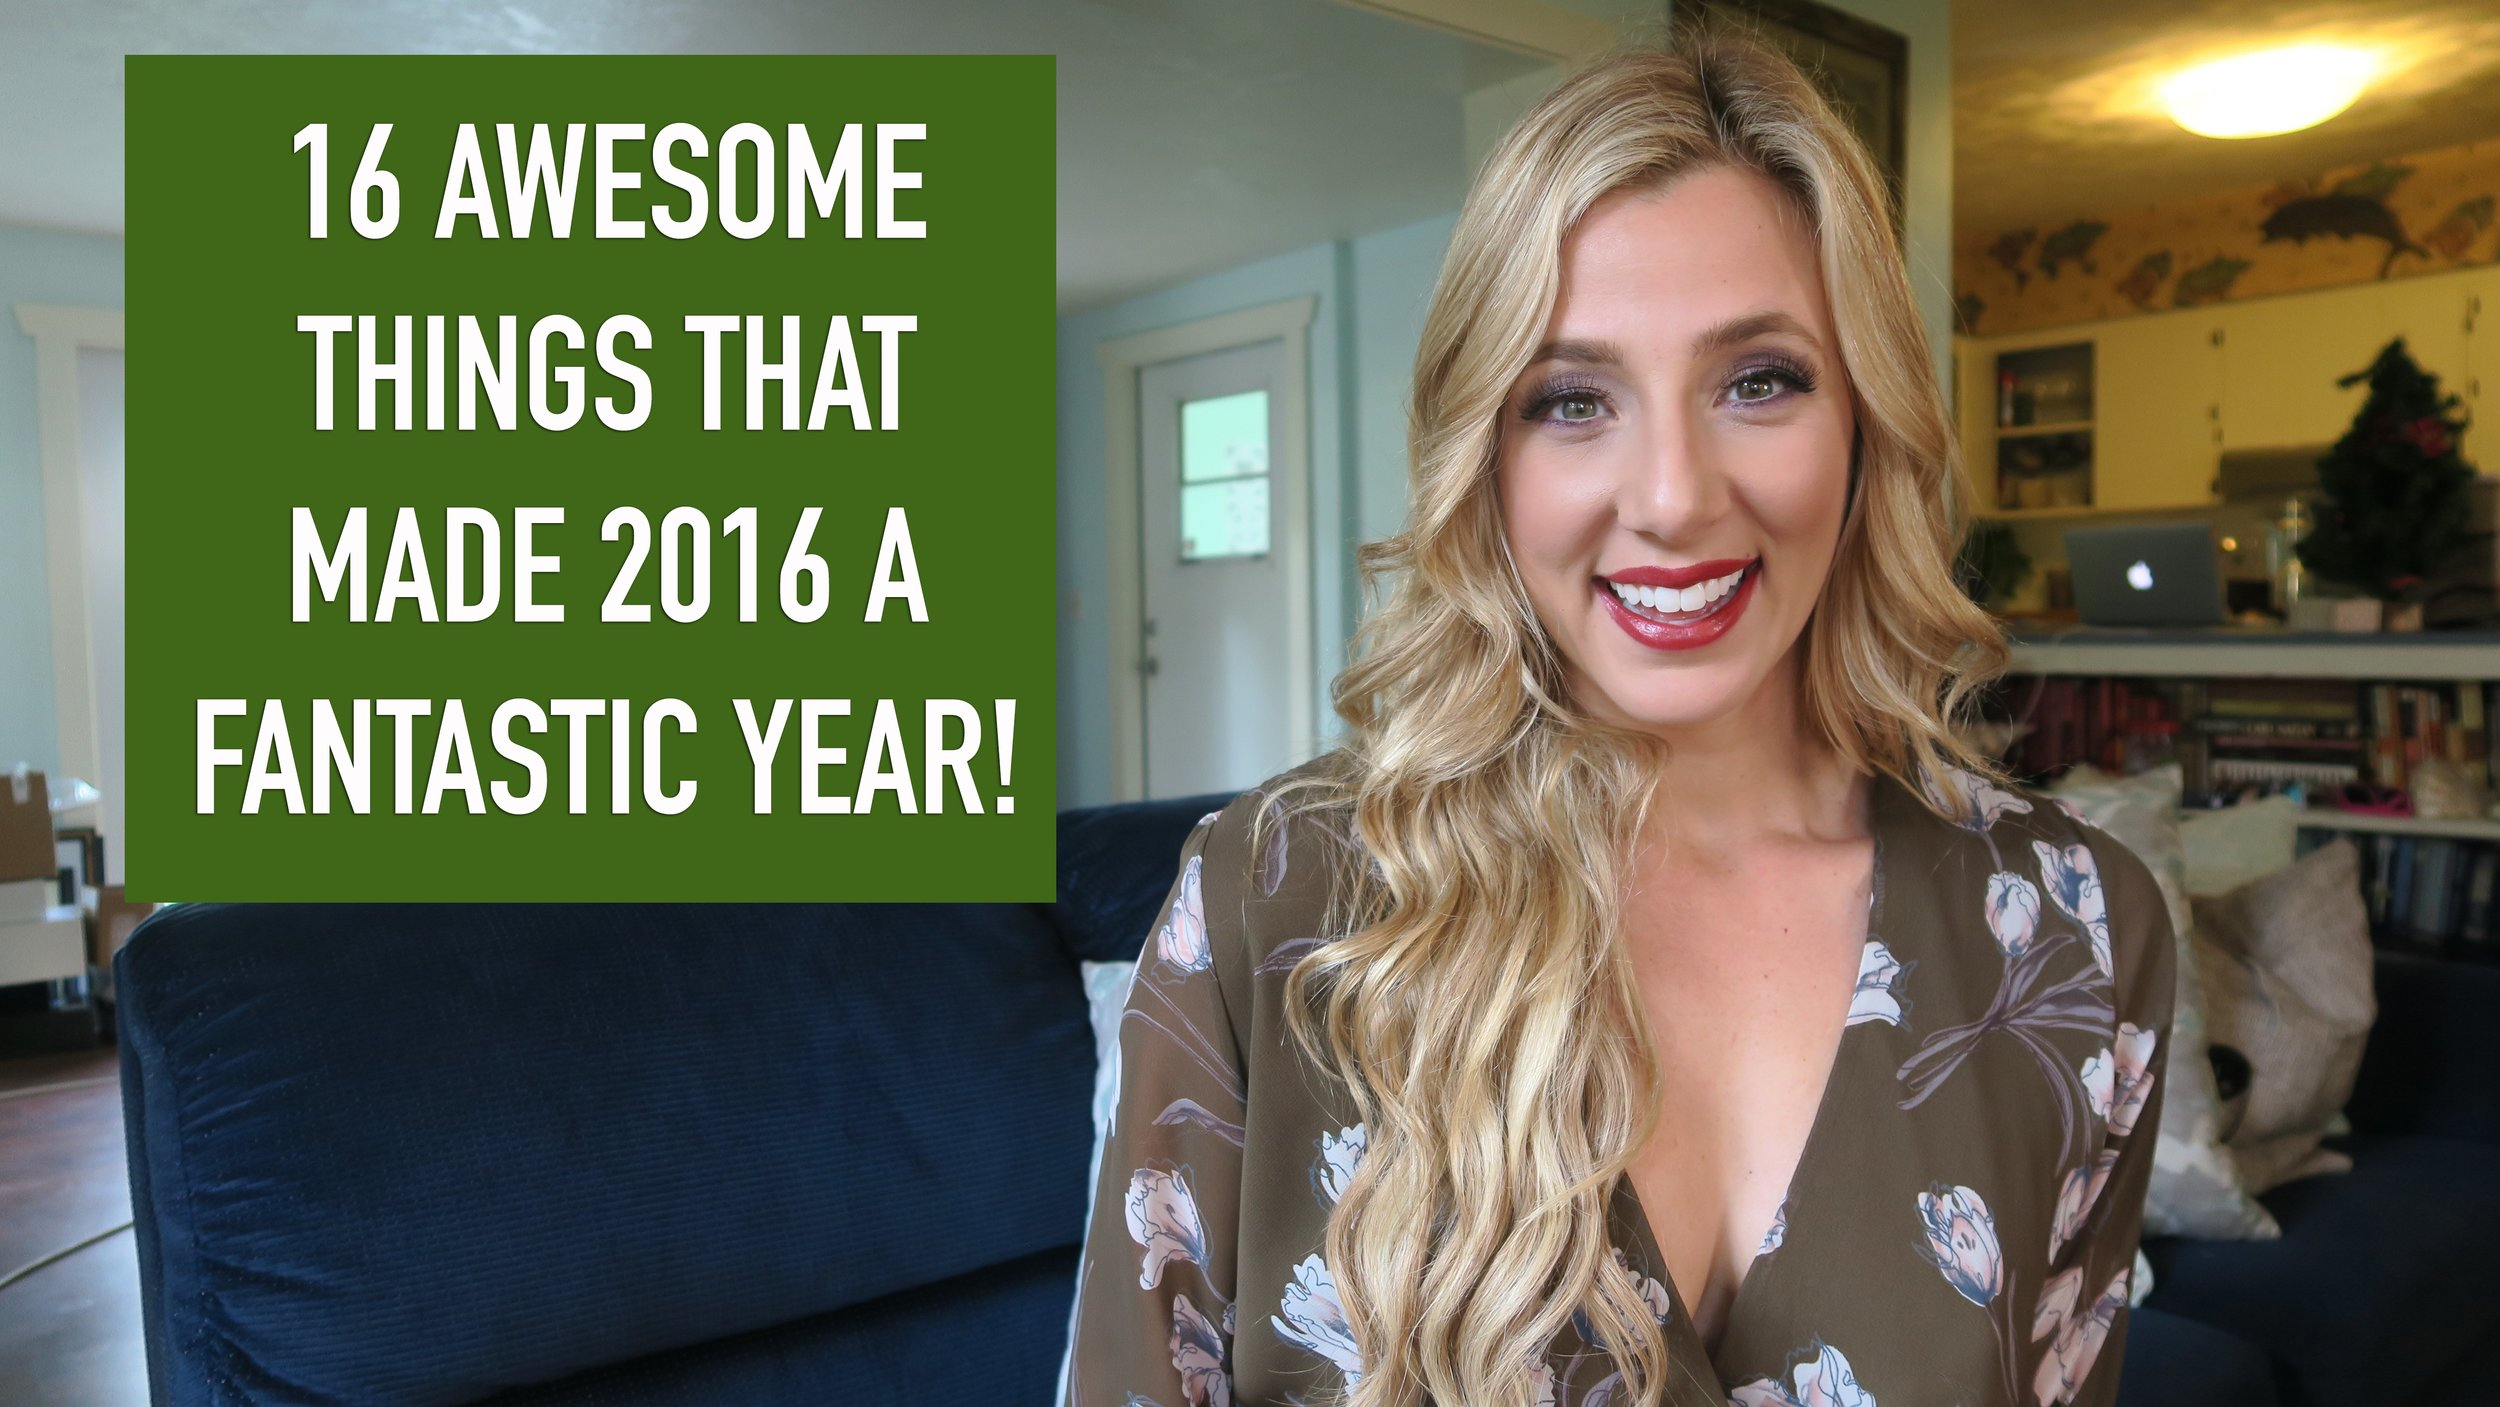 16 AWESOME THINGS THAT MADE 2016 FANTASTIC